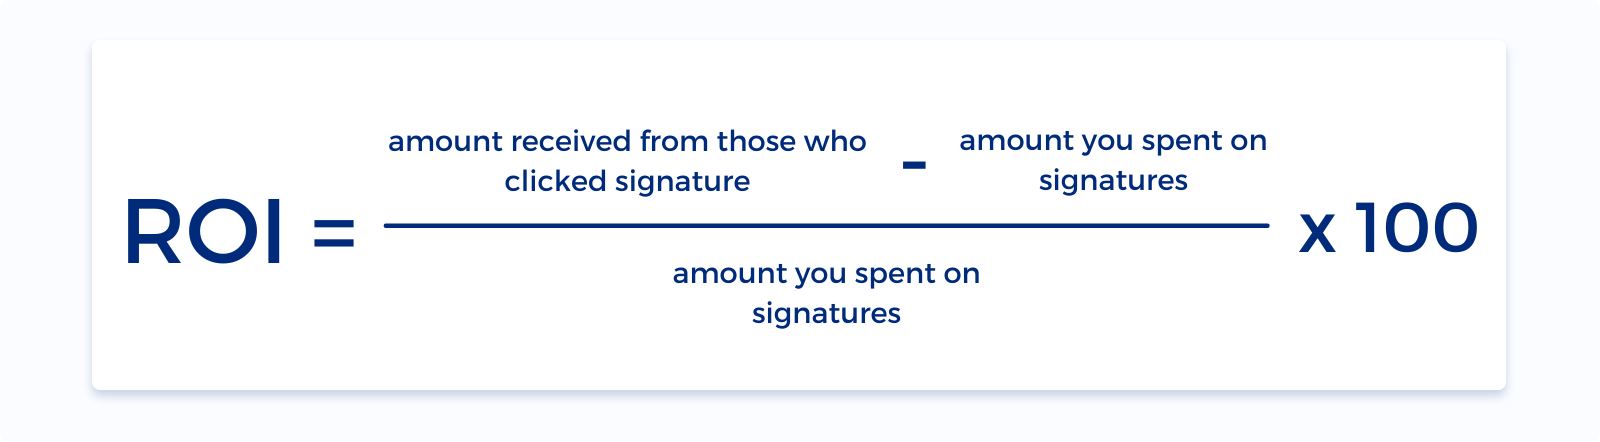 ROI of email signature marketing